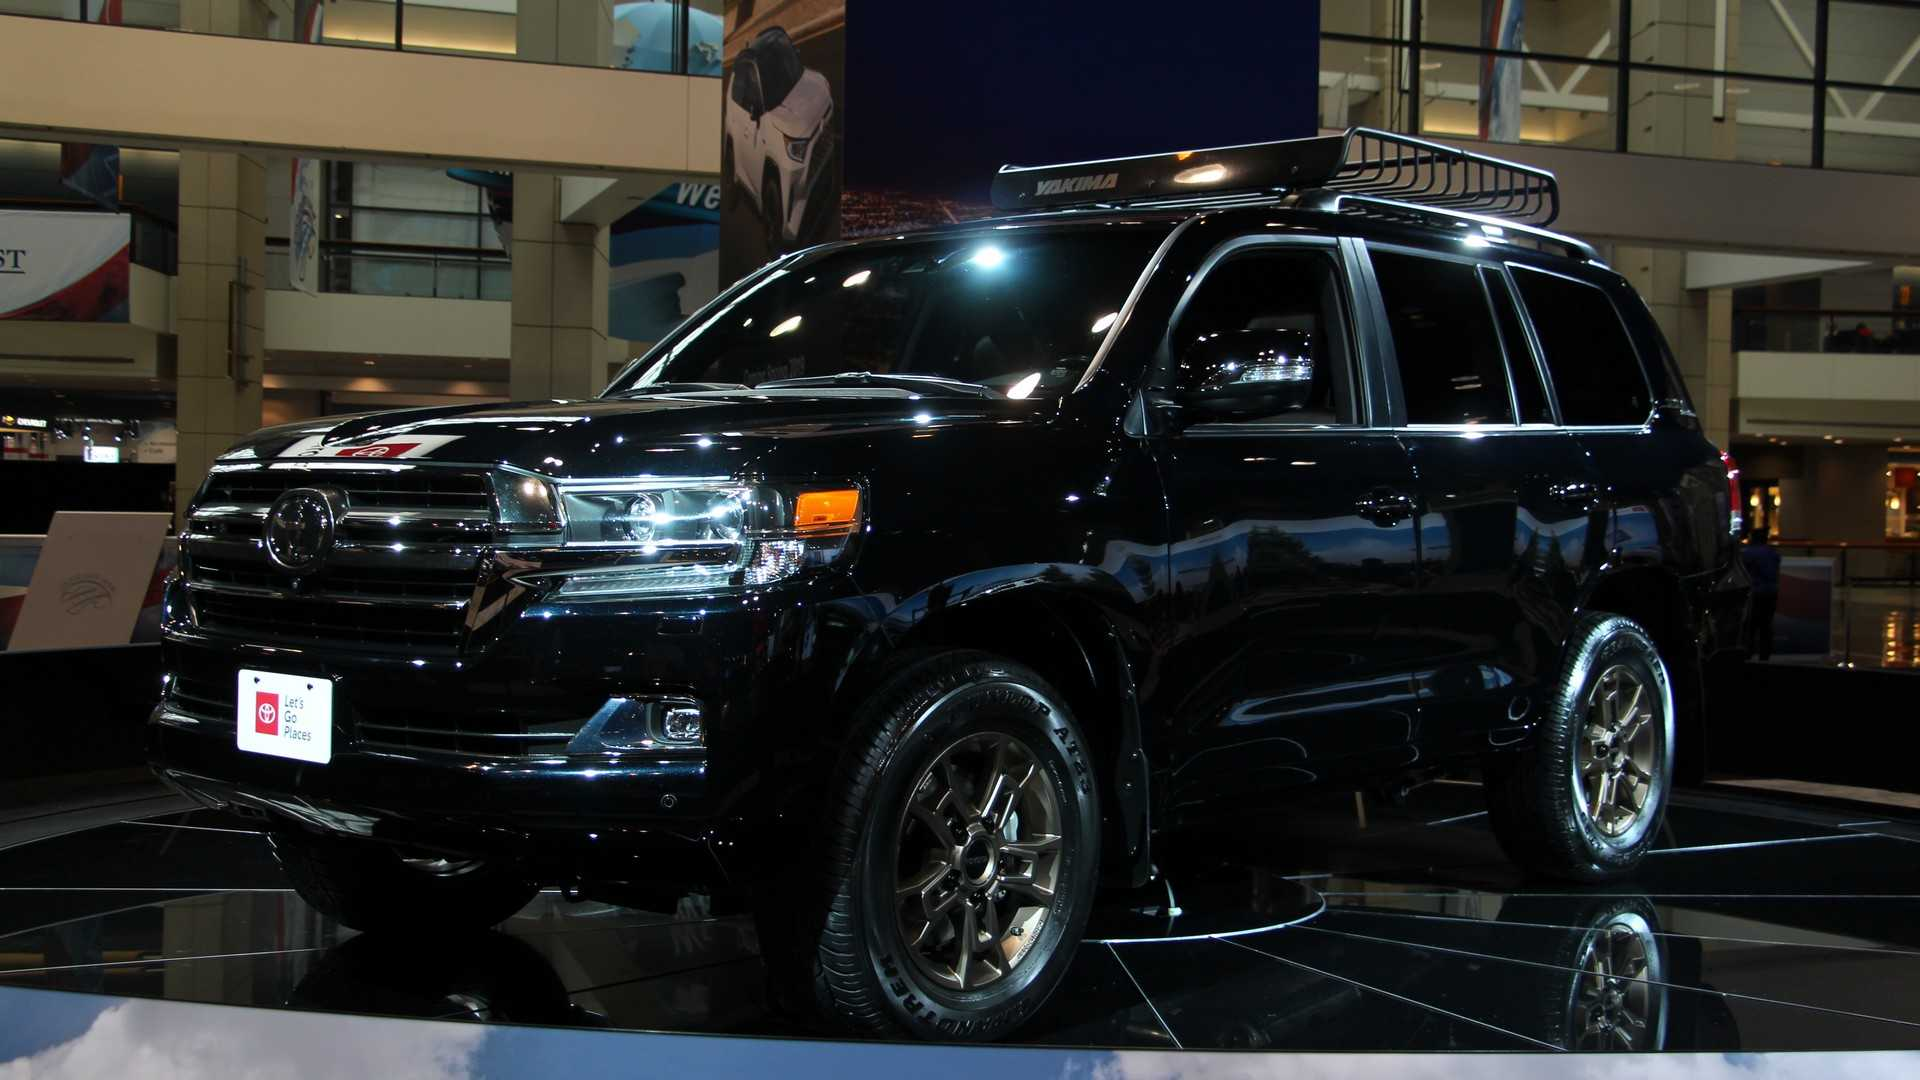 66 All New Toyota Land Cruiser V8 2020 Release Date And Concept